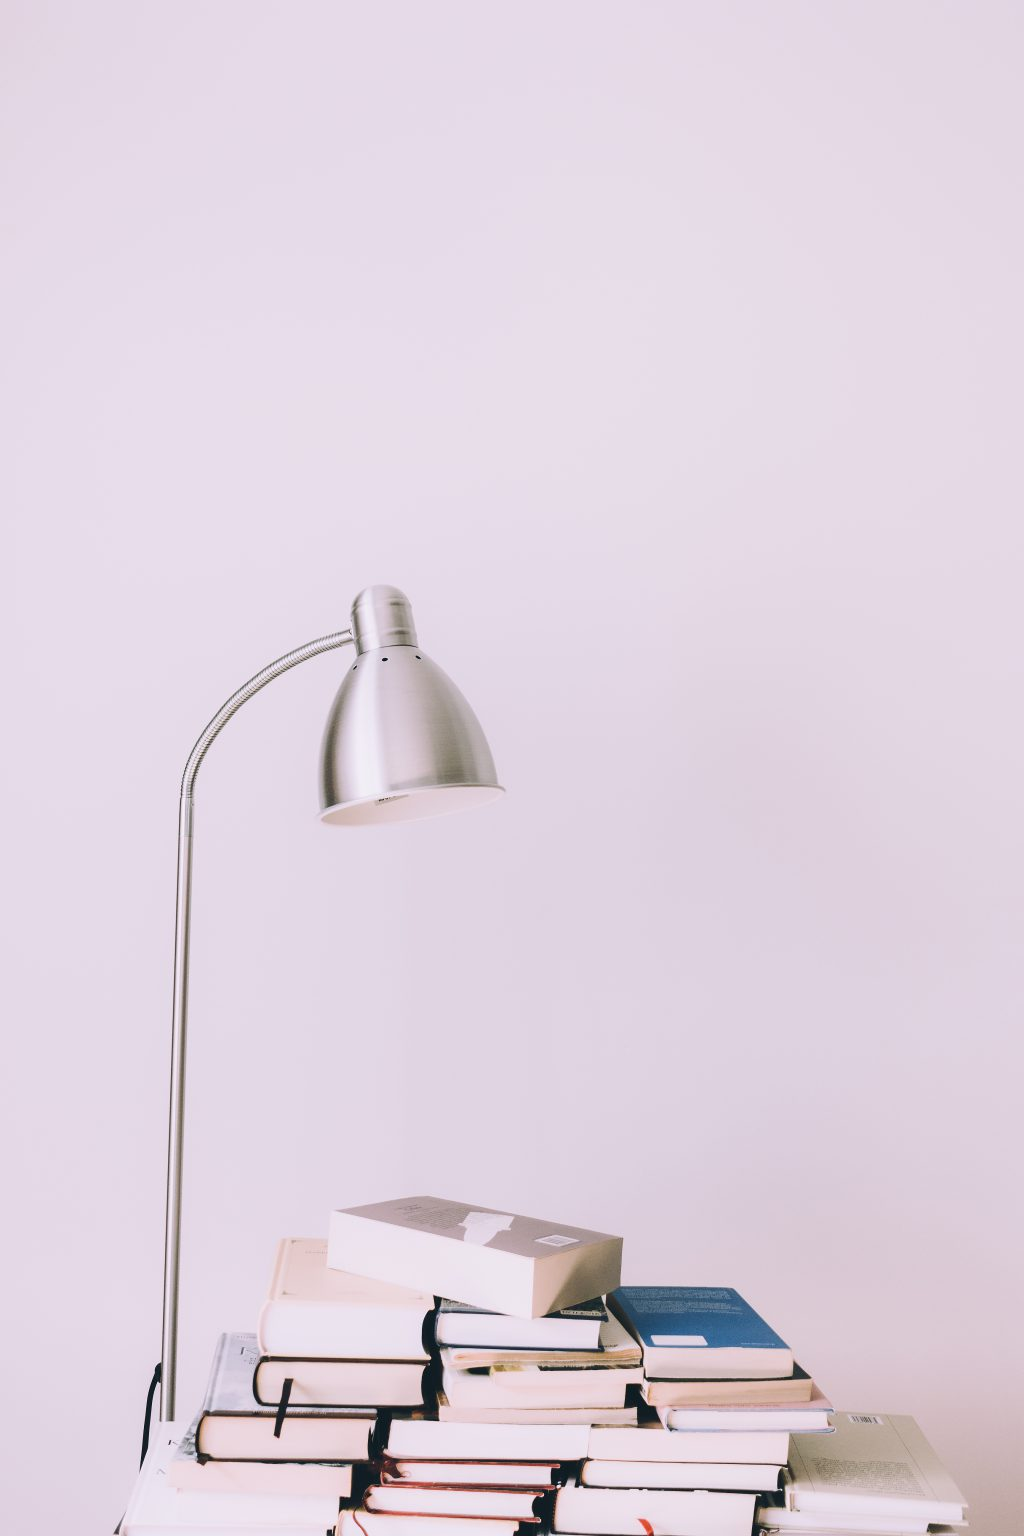 Metal desk lamp and books pile - free stock photo